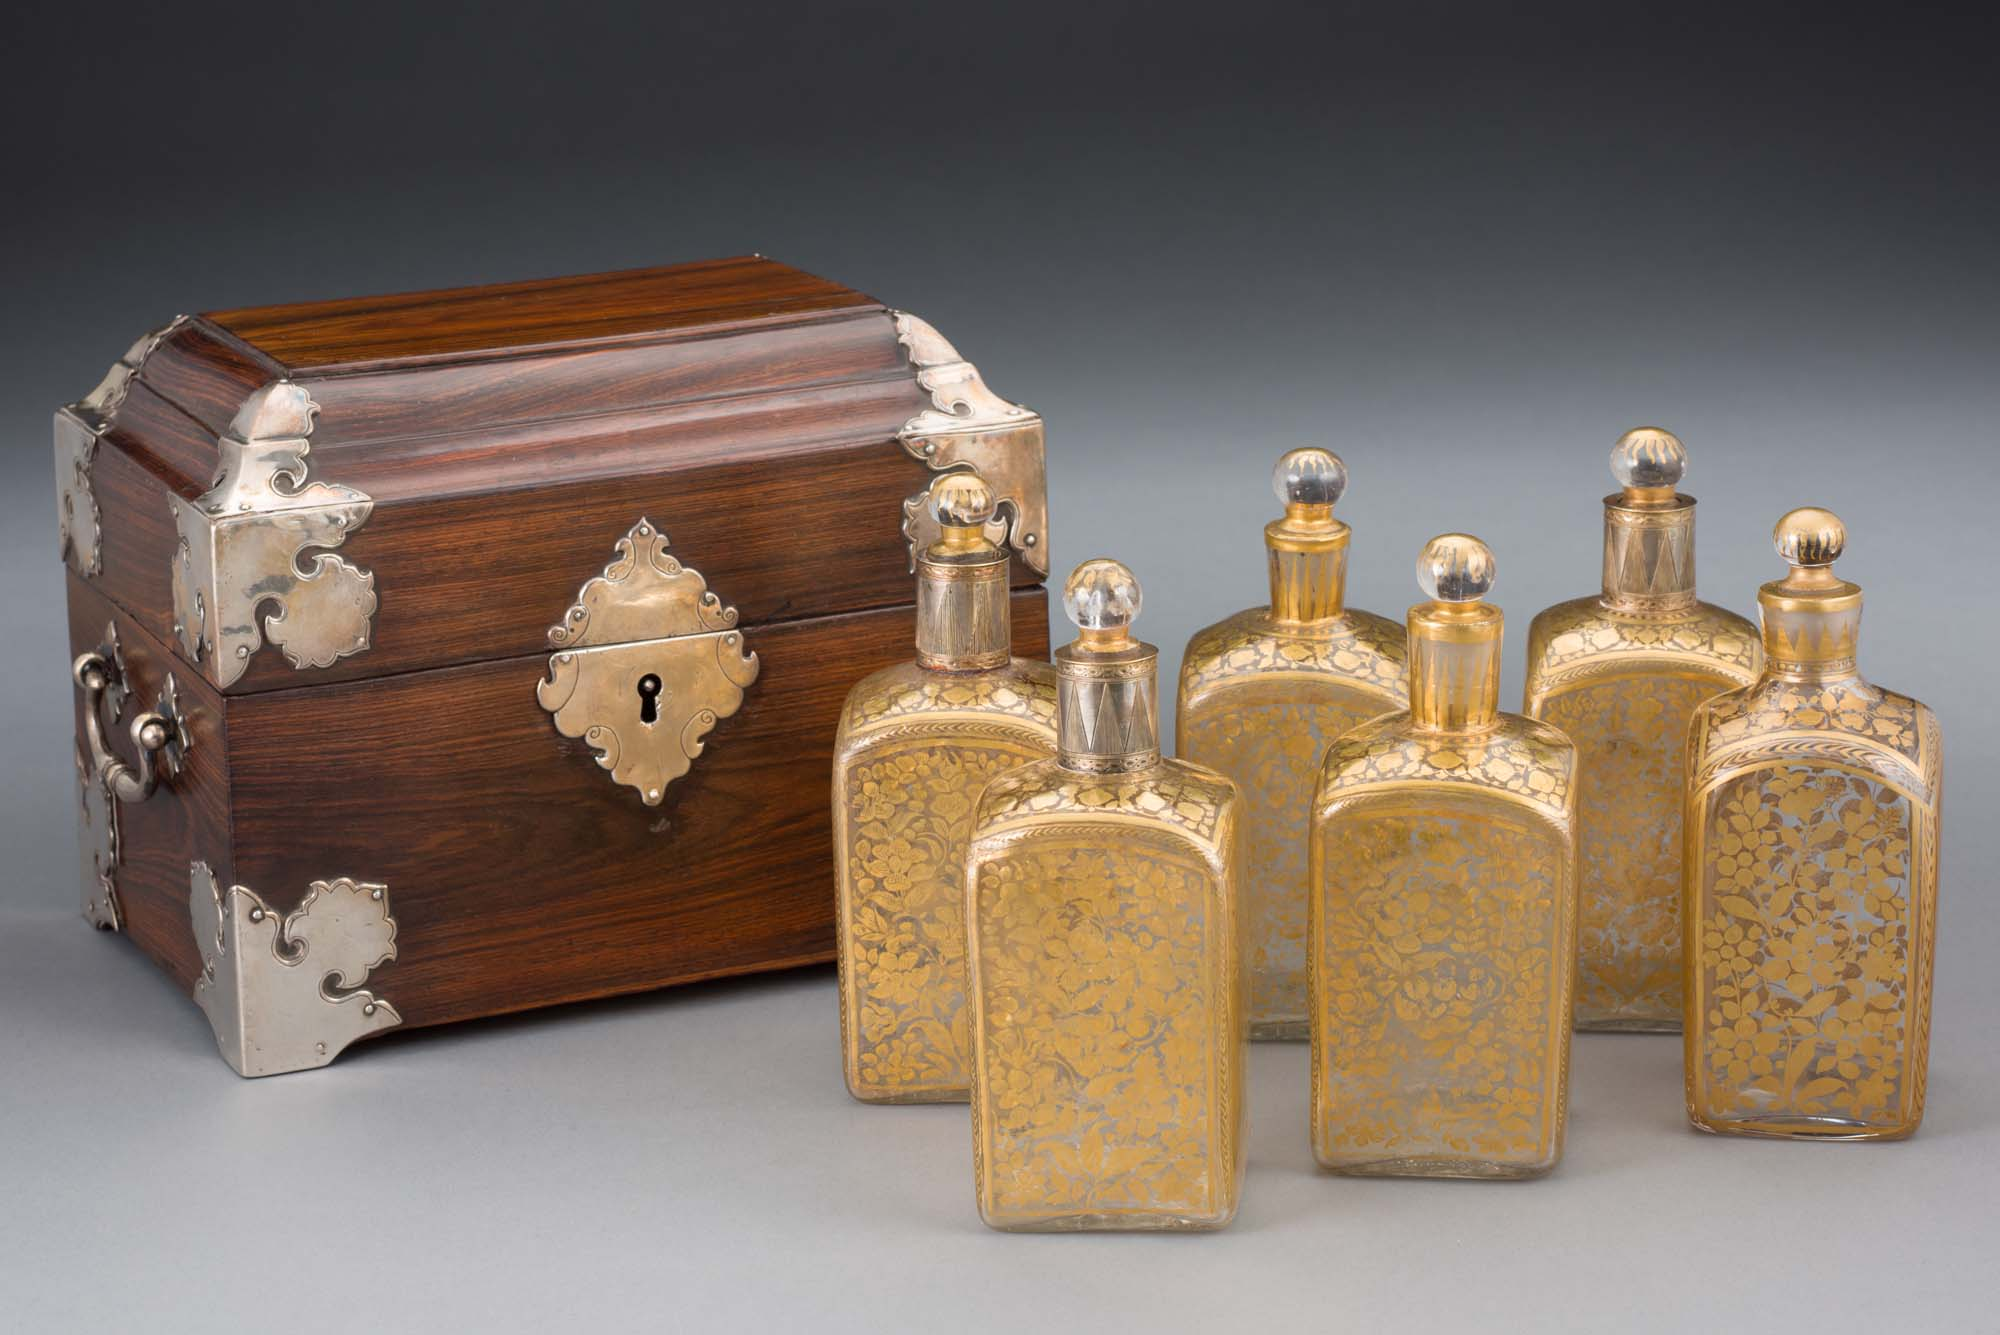 a small wooden case with six golden flasks lined up next to it